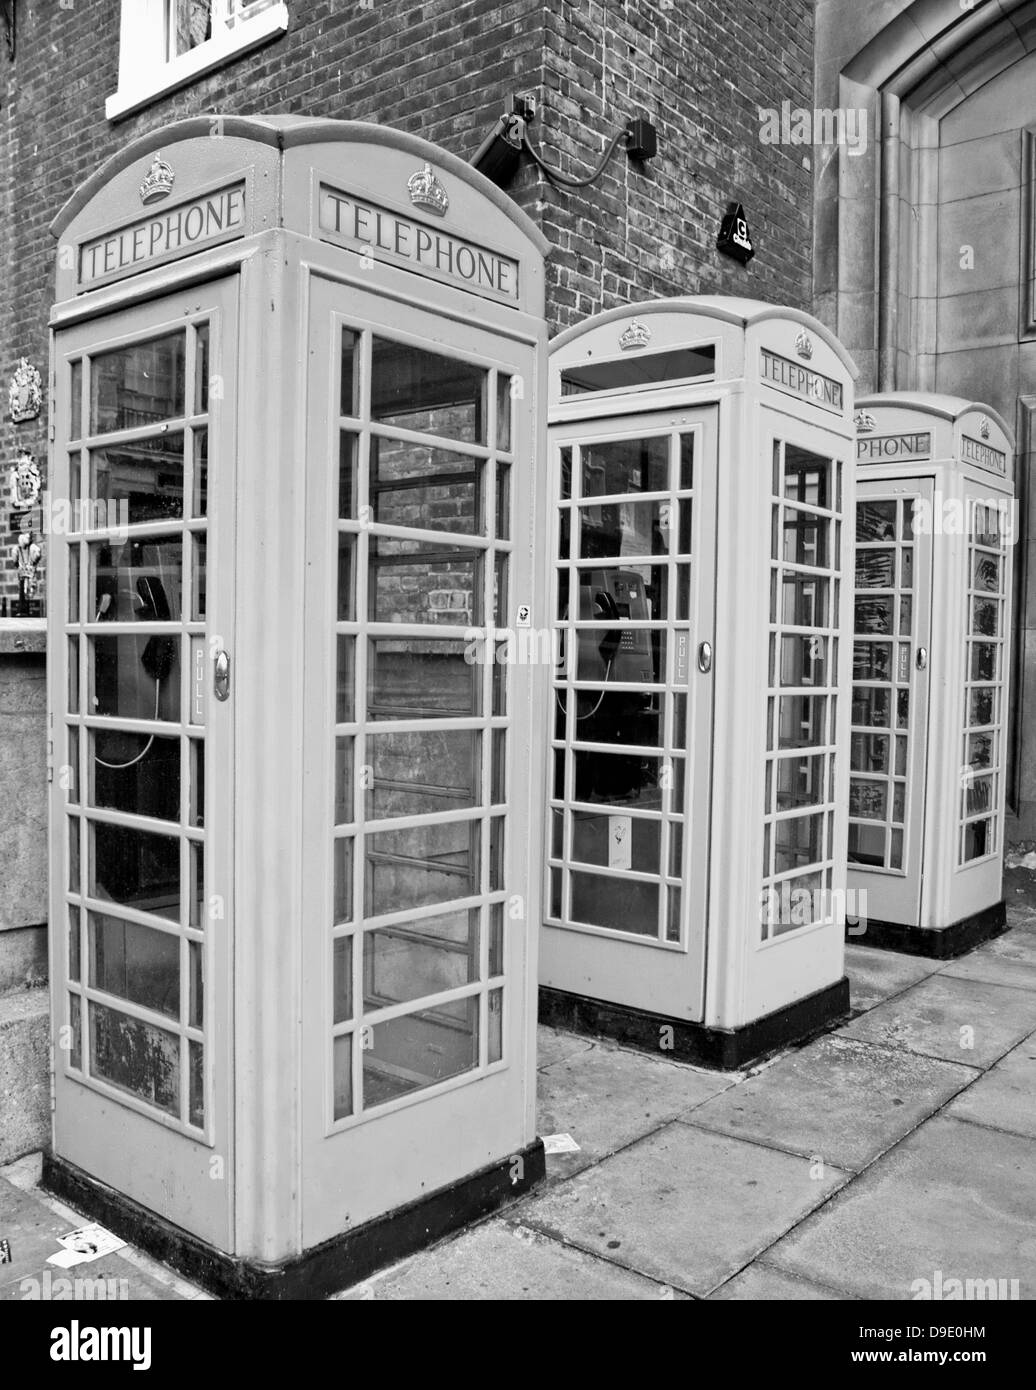 Black and white view of telephone boxes in front of the Royal Academy of Arts, Burlington House, Mayfair, City of - Stock Image